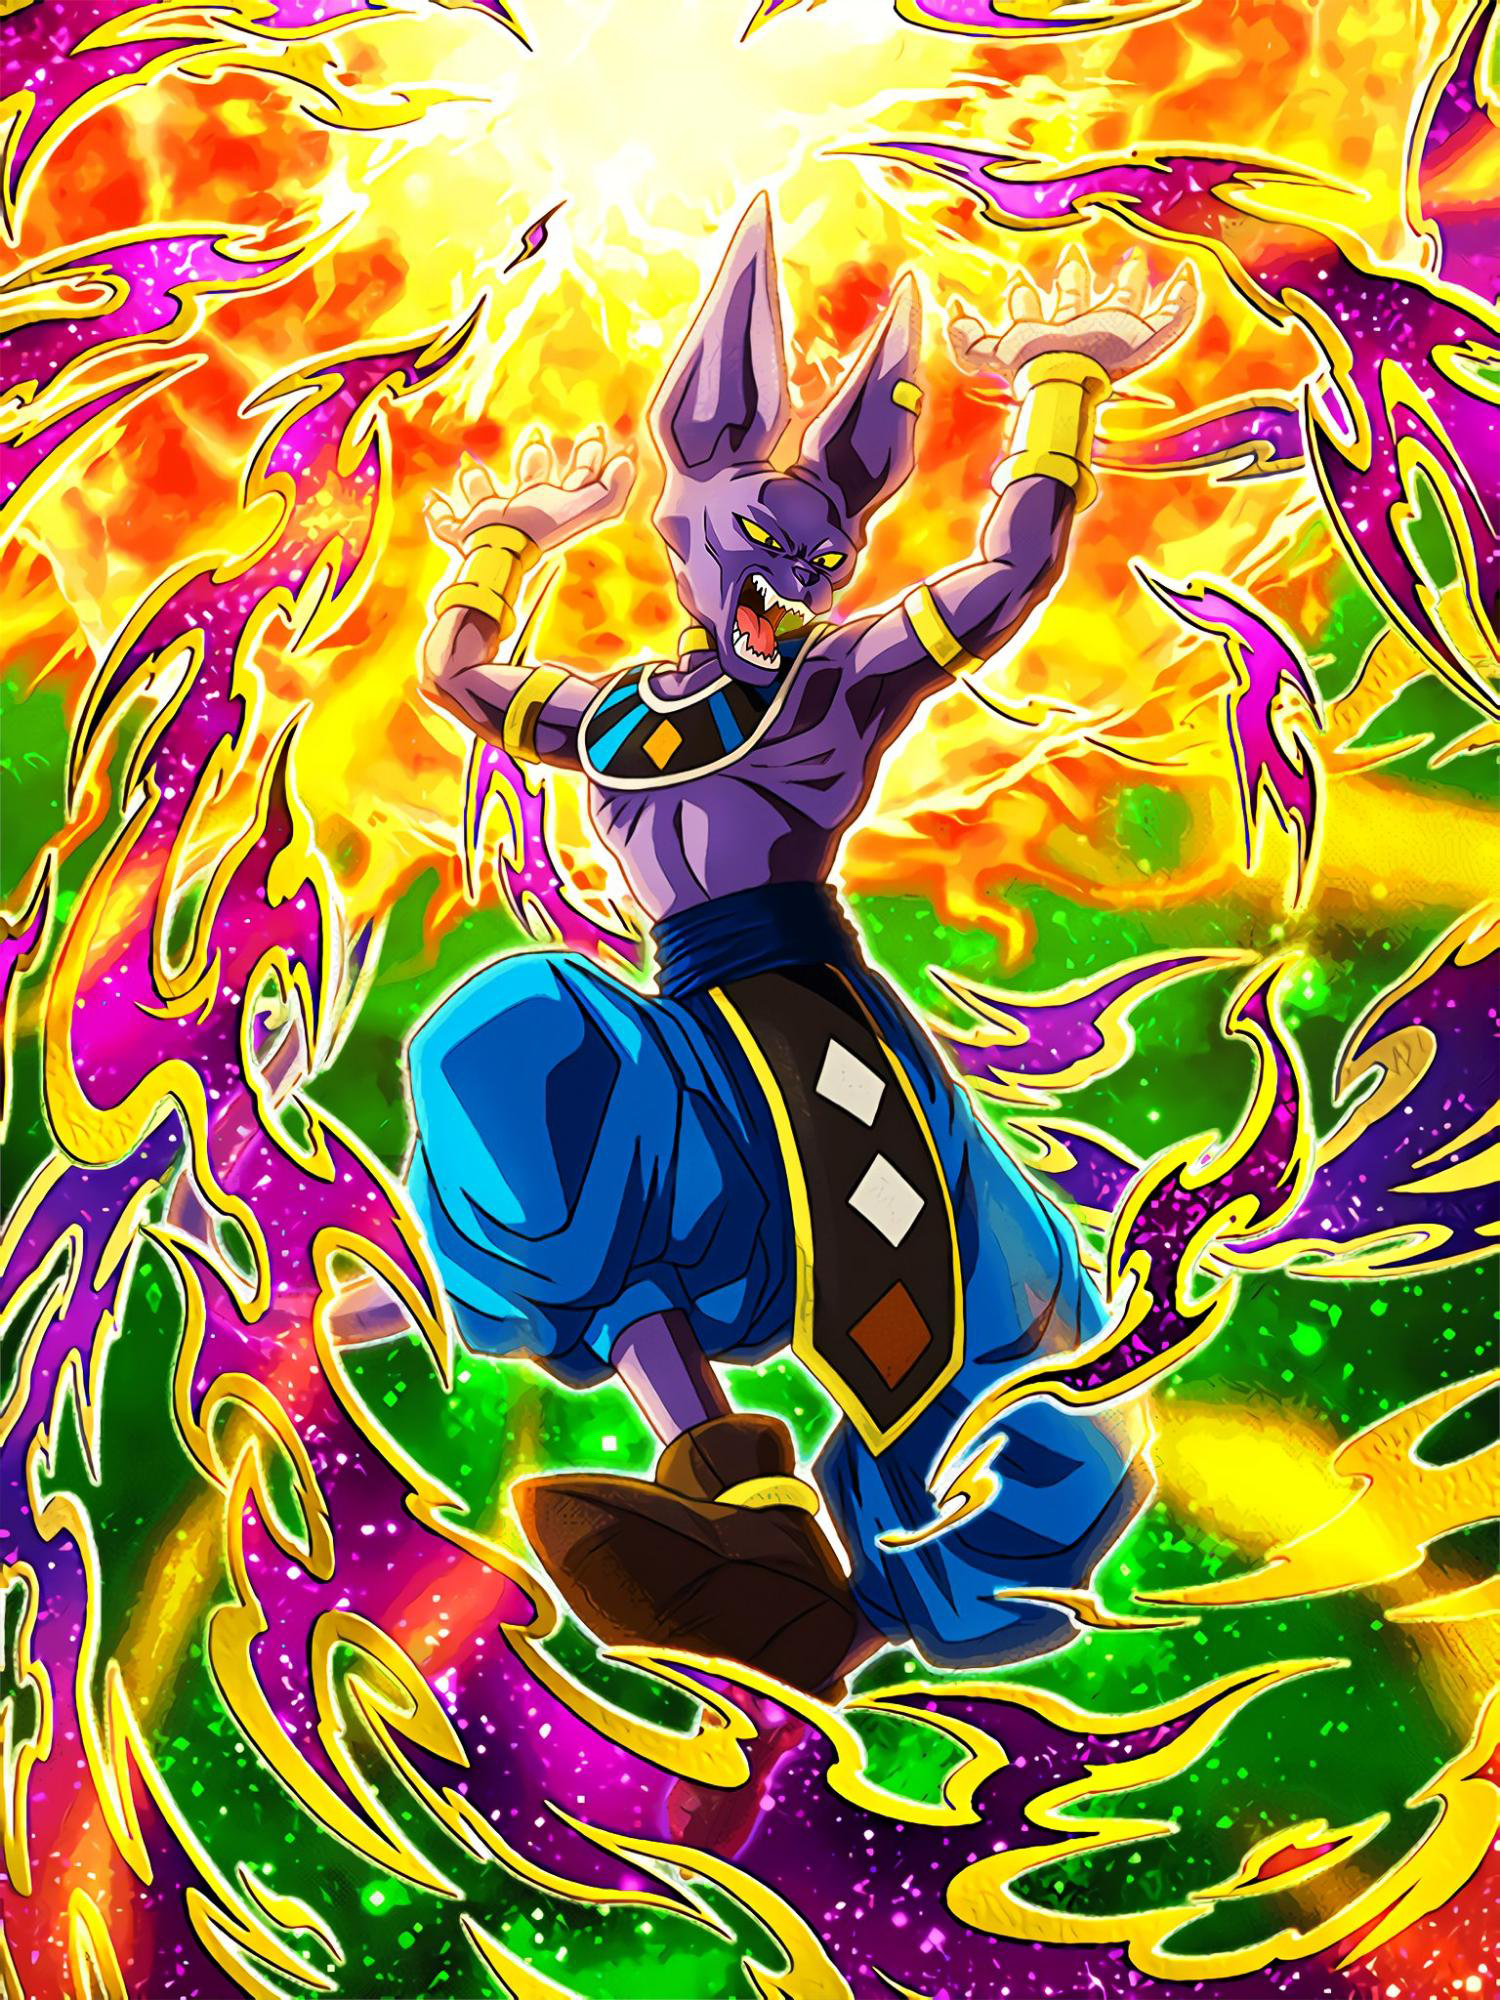 Hot-Blooded God of Destruction Beerus